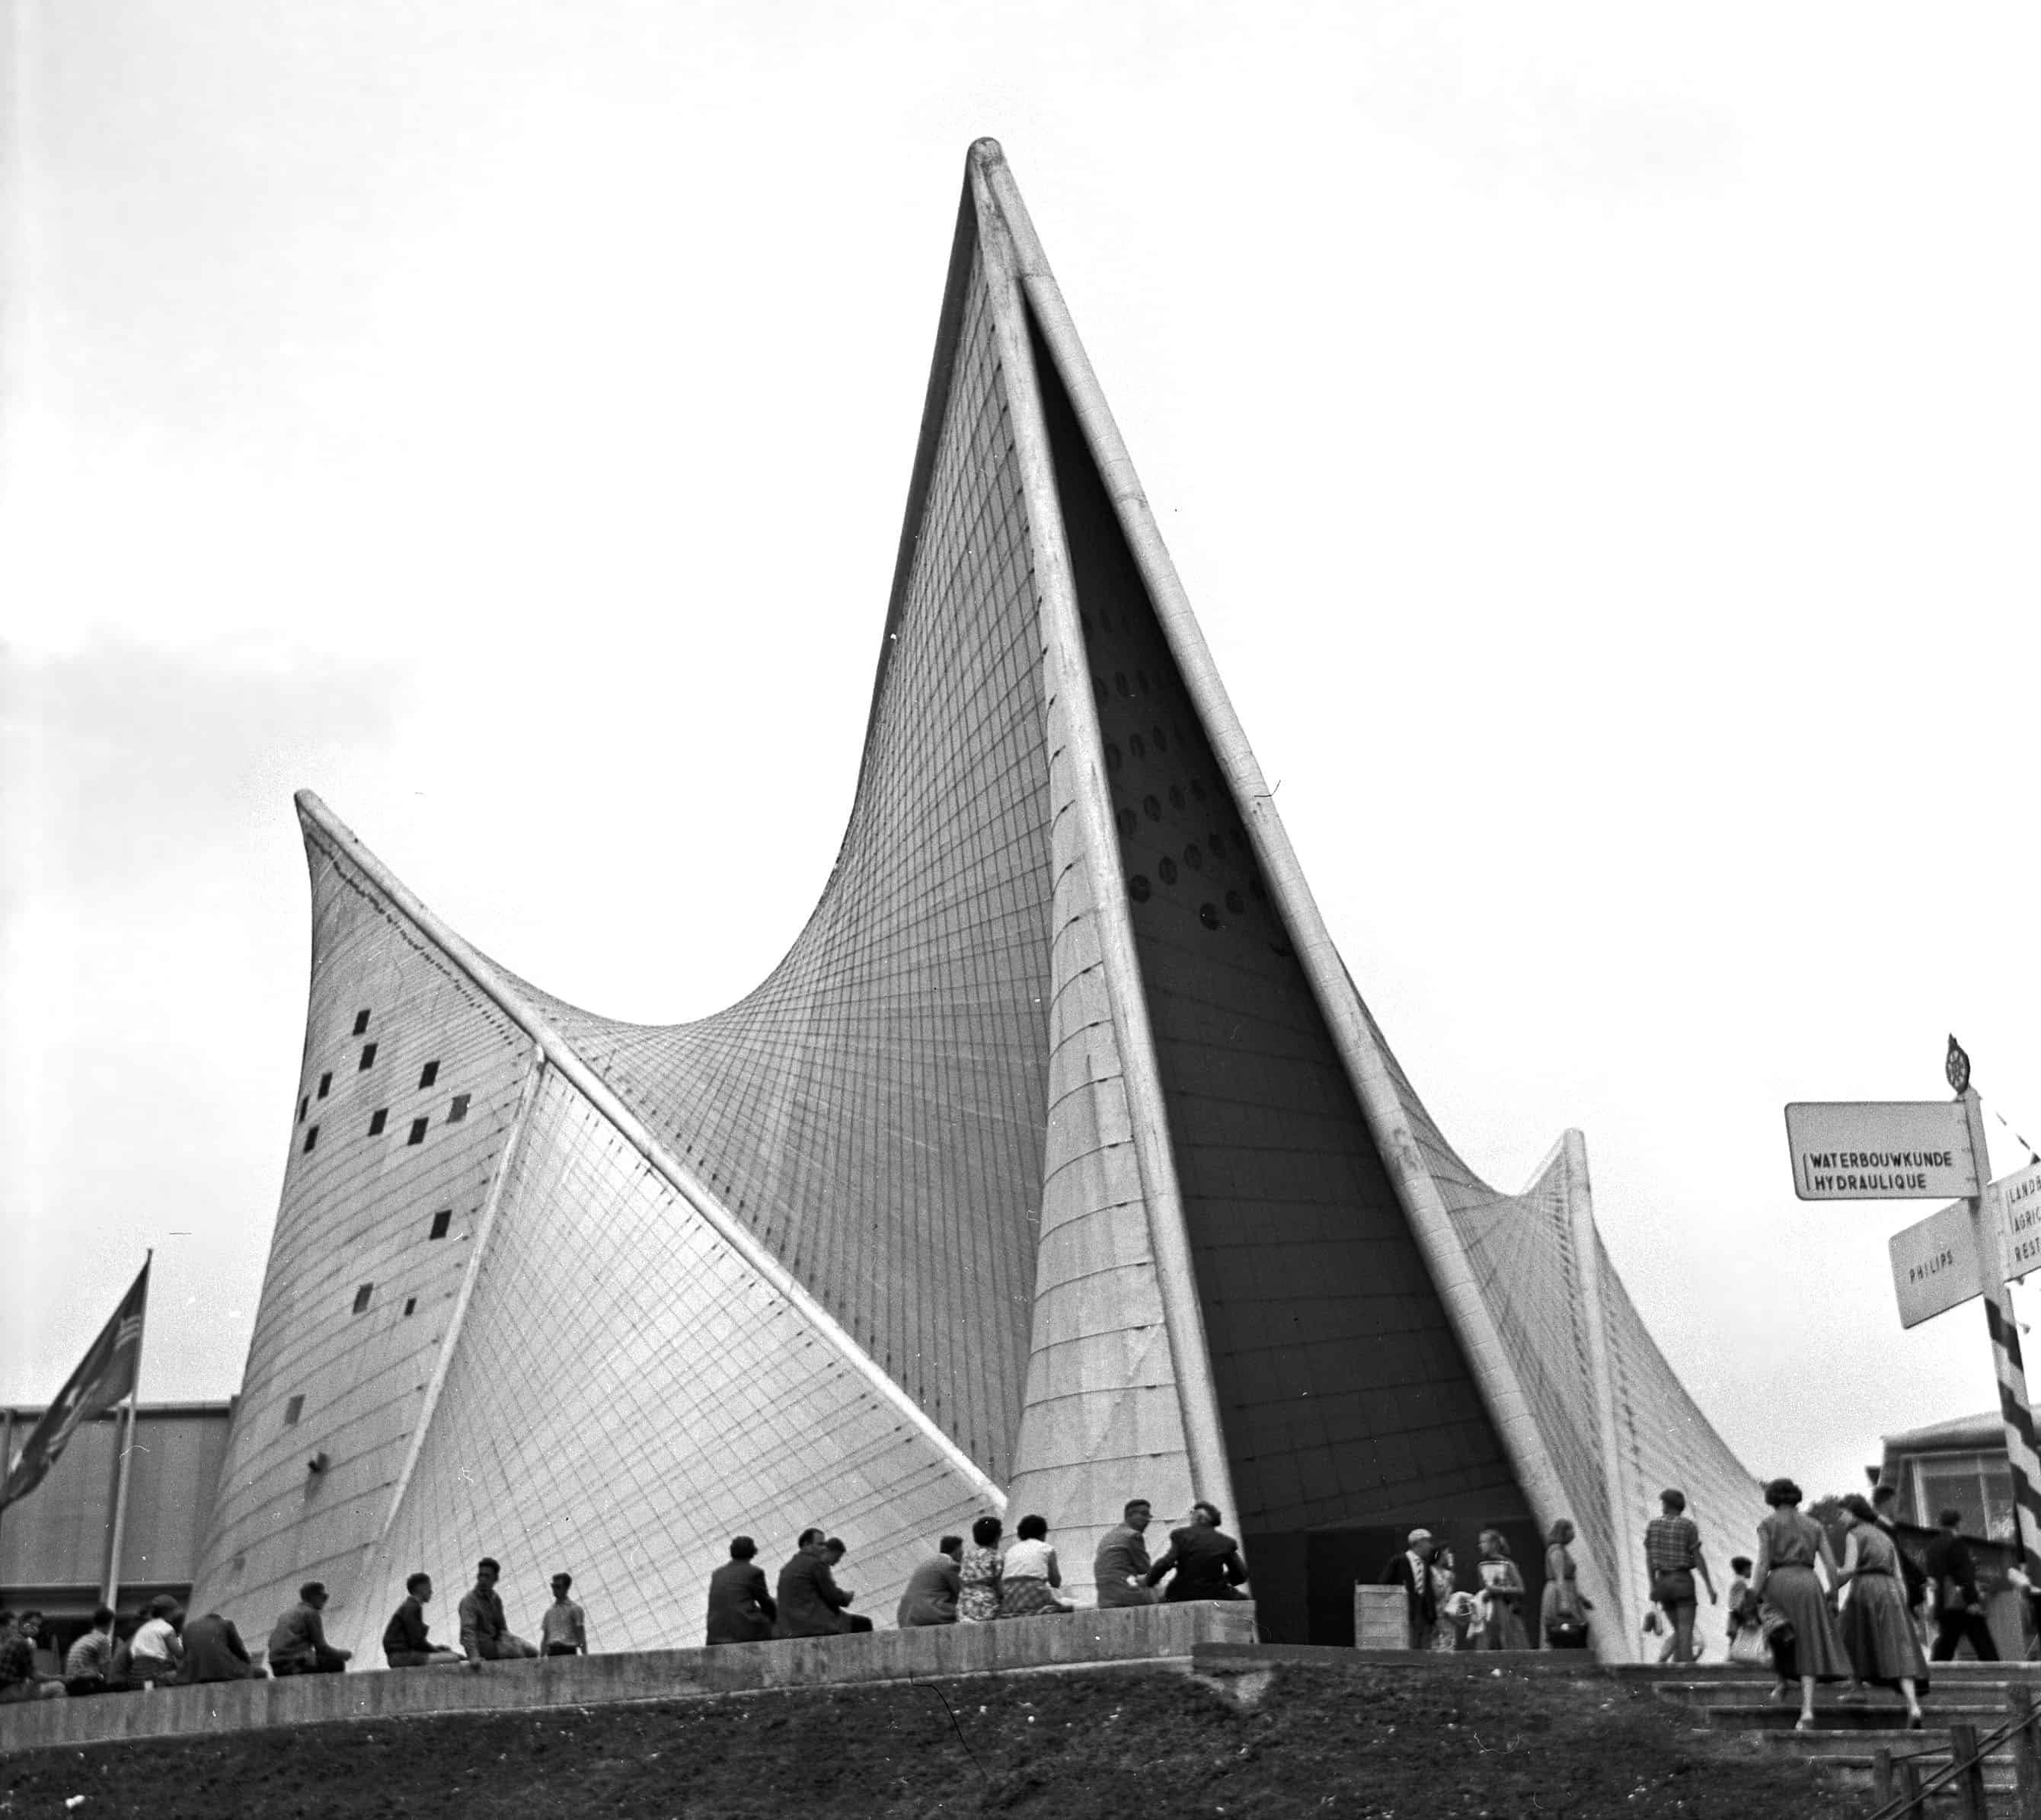 Le Corbusier, Iannis Xenakis, Edgar Varèse, Poème Électronique, Philips Pavilion, International Exhibition in Brussels, 1958